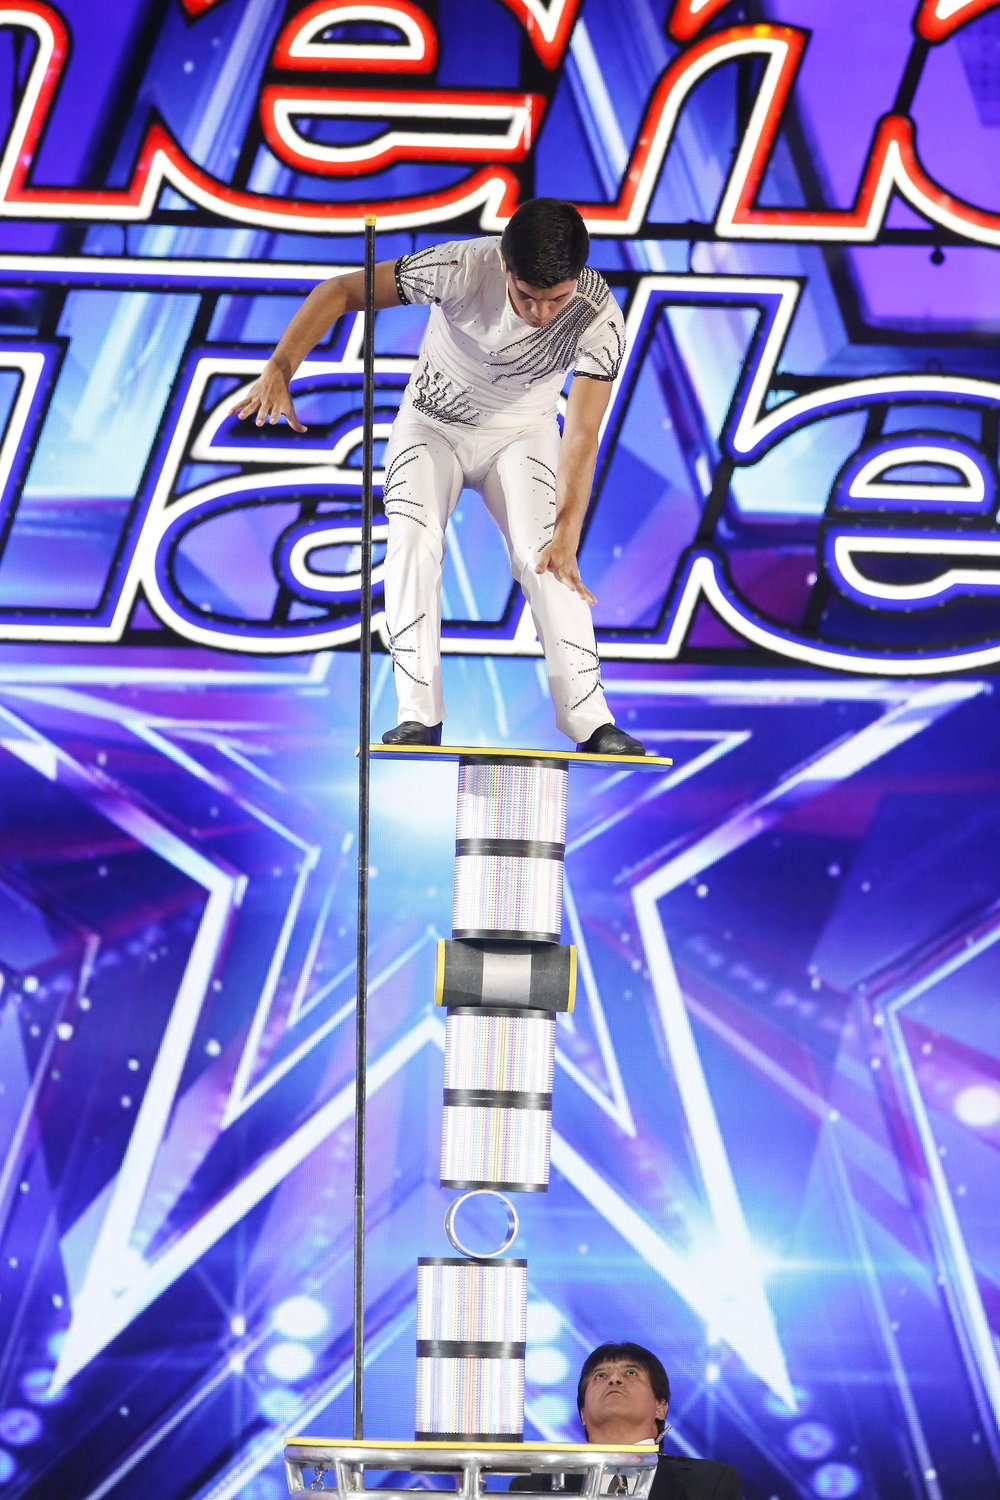 Jonathan_8_stack_Americas_Got_Talent.JPG